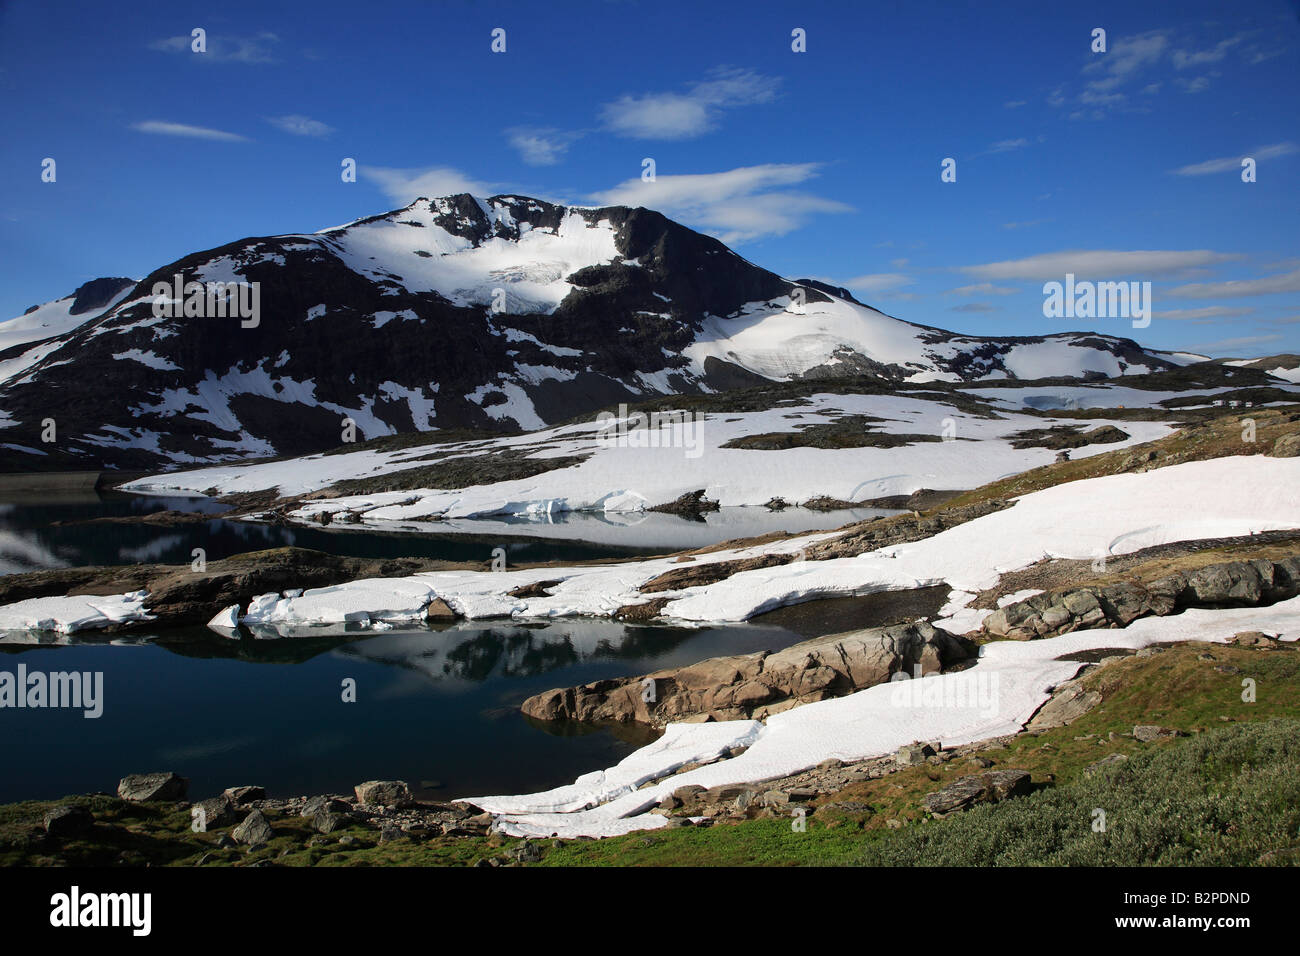 Norway Jotunheimen National Park mountain landscape scenery - Stock Image